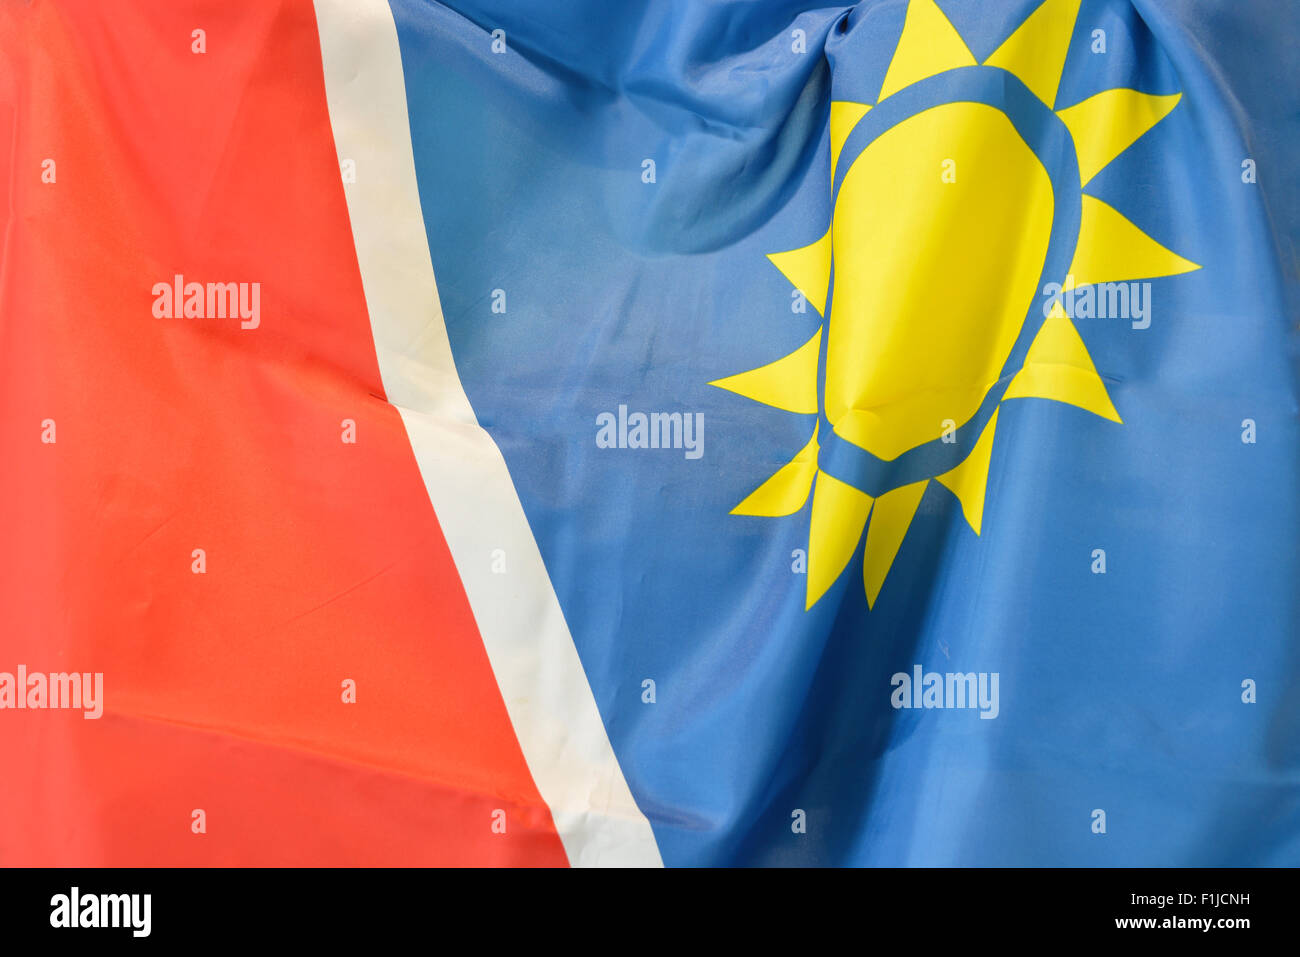 Namibian National Flag, Windhoek (Windhuk), Khomas Region, Republic of Namibia - Stock Image